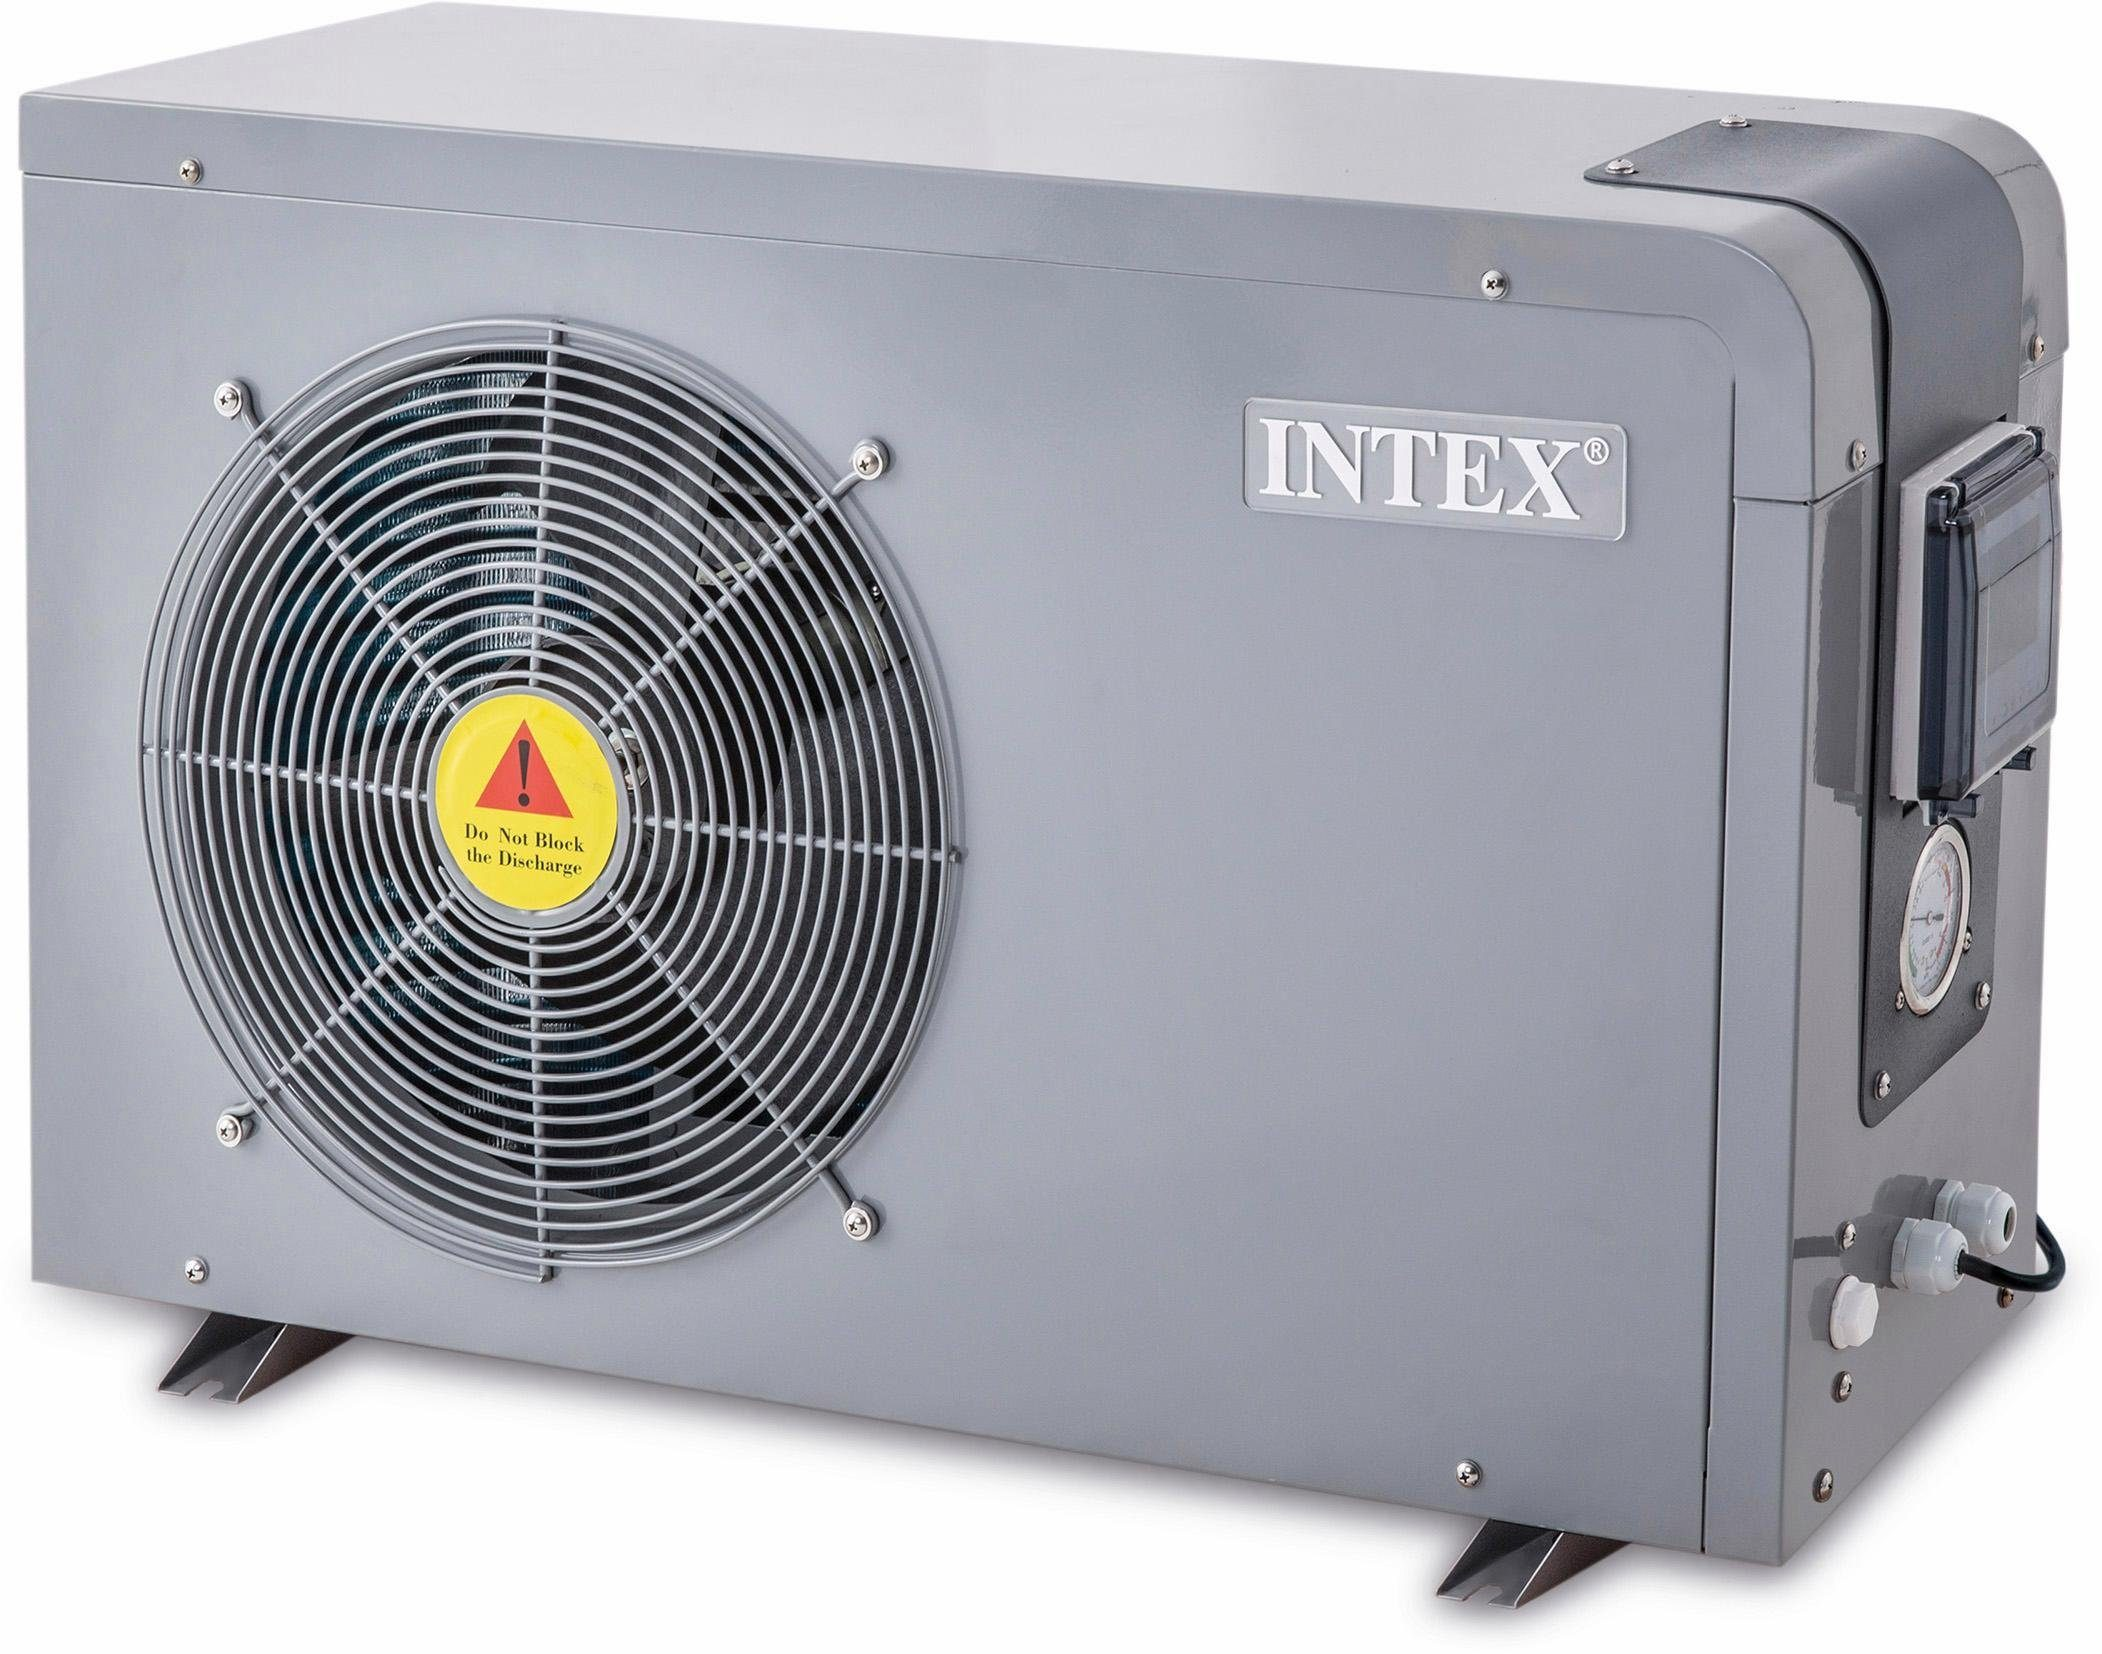 Intex Poolheizung, »Heat Pump«